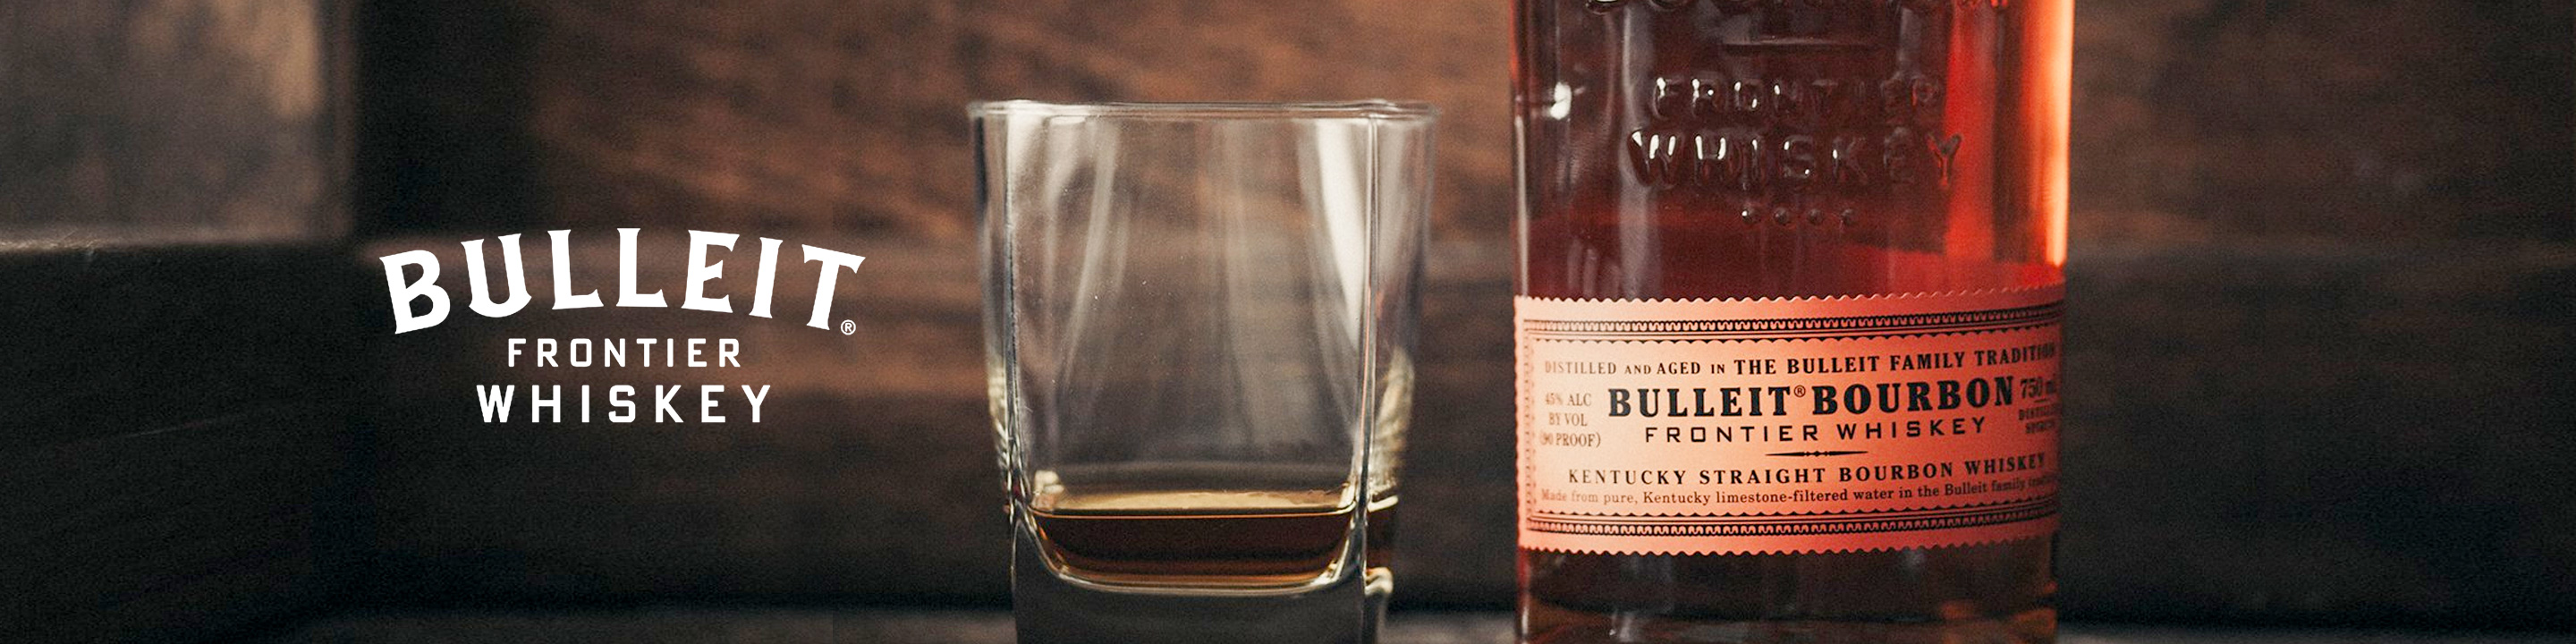 To this day, Bulleit™ Bourbon is distilled and aged in the Bulleit family tradition. High rye content gives it a bold, spicy character with a distinctively smooth, clean finish. Our aging philosophy is simple: we wait until our bourbon is ready.  Buy Bulleit online now from your nearby liquor store via Minibar Delivery.